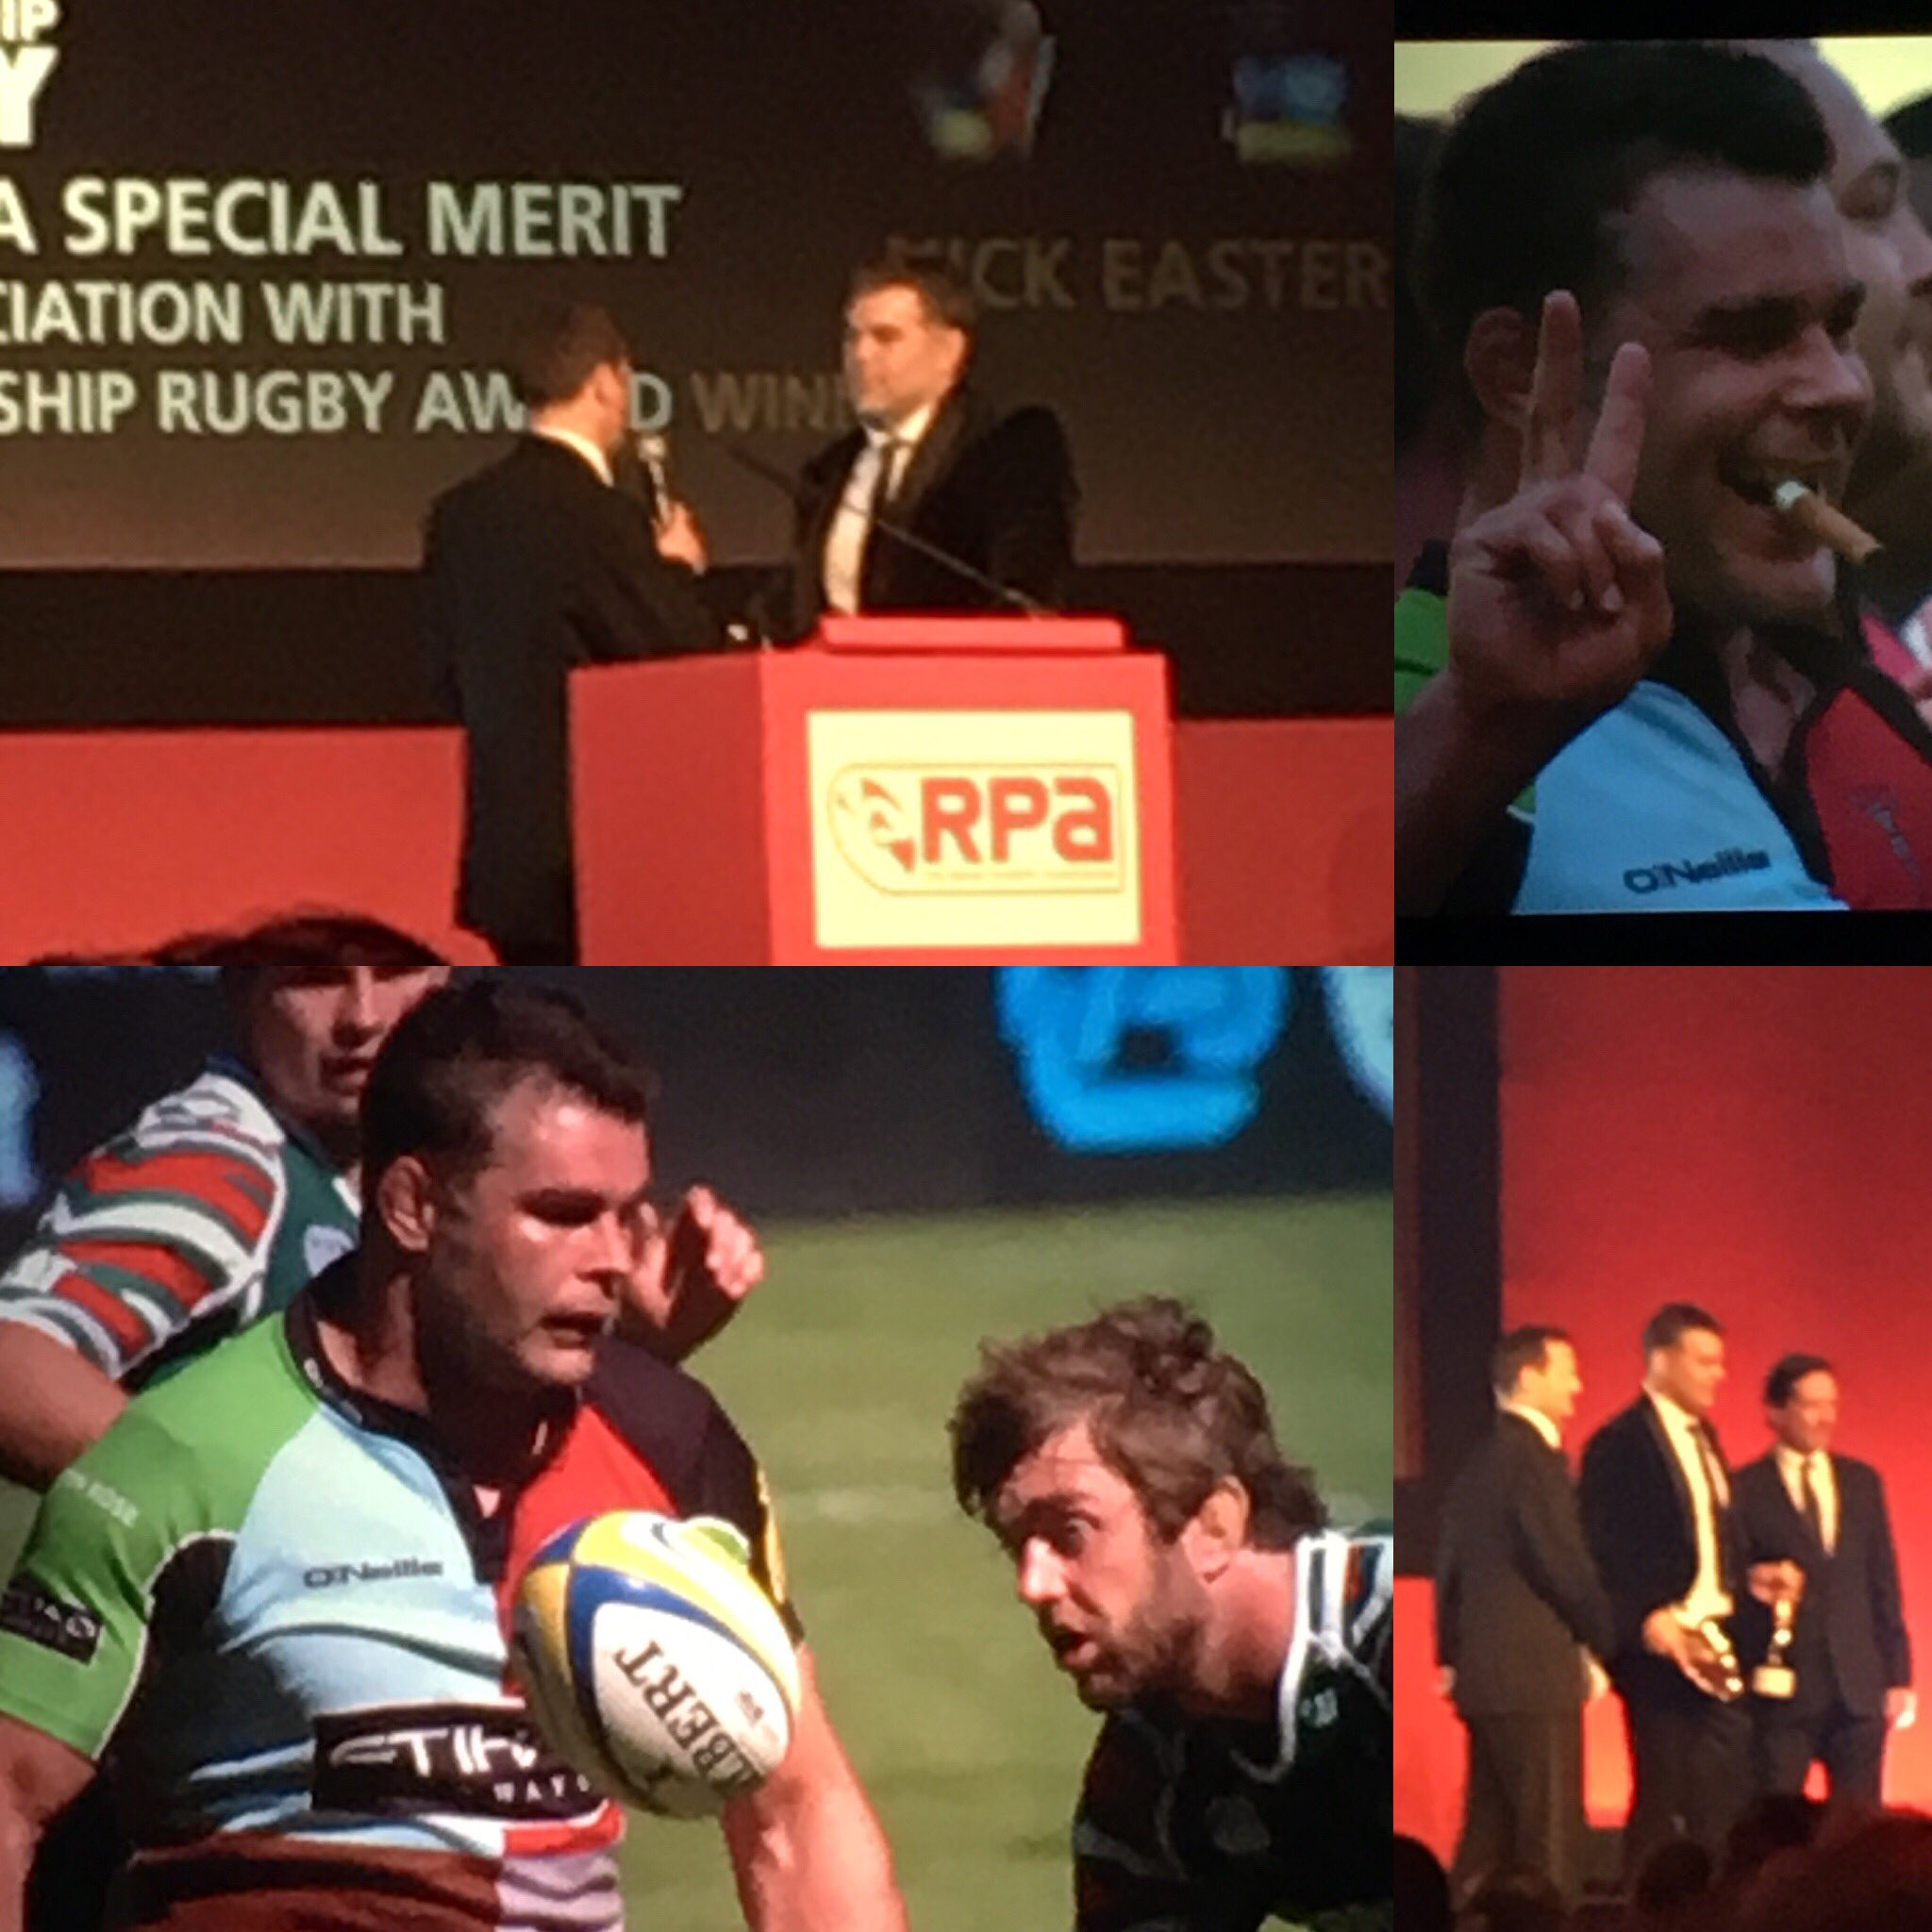 Great to see our Ambassador Nick Easter @Harlequins being recognised @theRPA Awards #RugbuWorks https://t.co/3KDP1a10T3